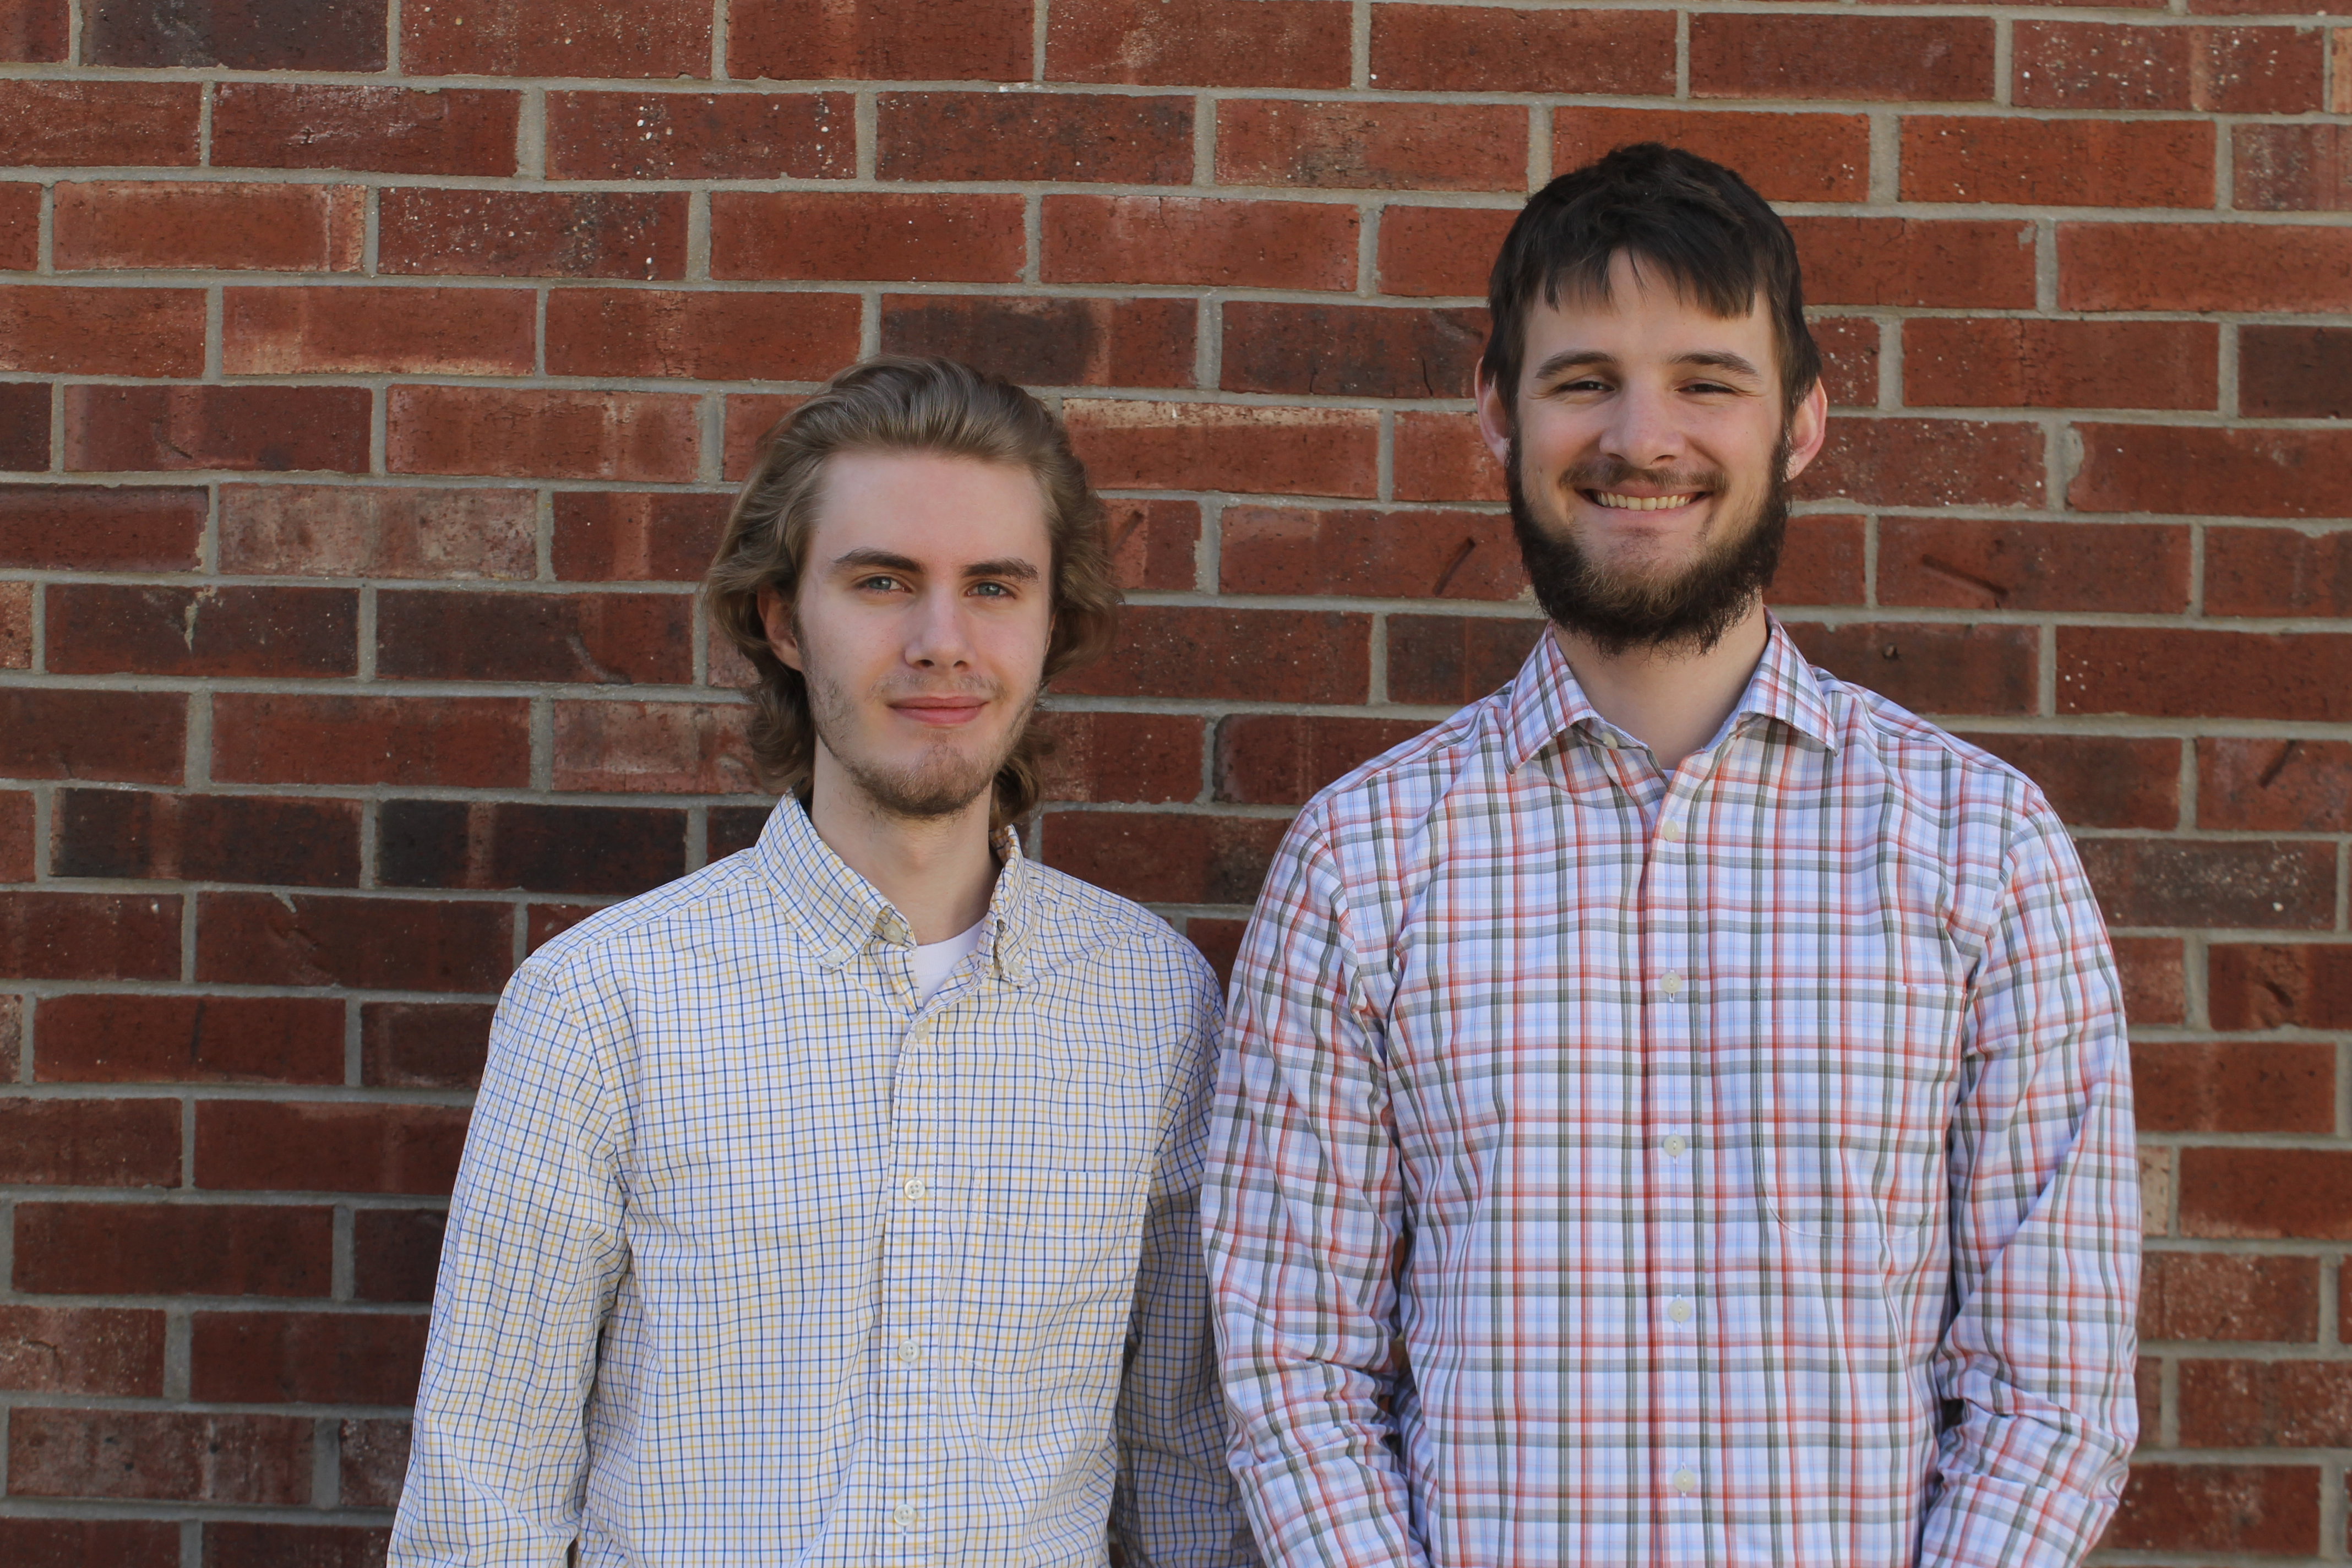 Torrey Saxton and Jonathan Unger were awarded the Goldwater Scholarship.